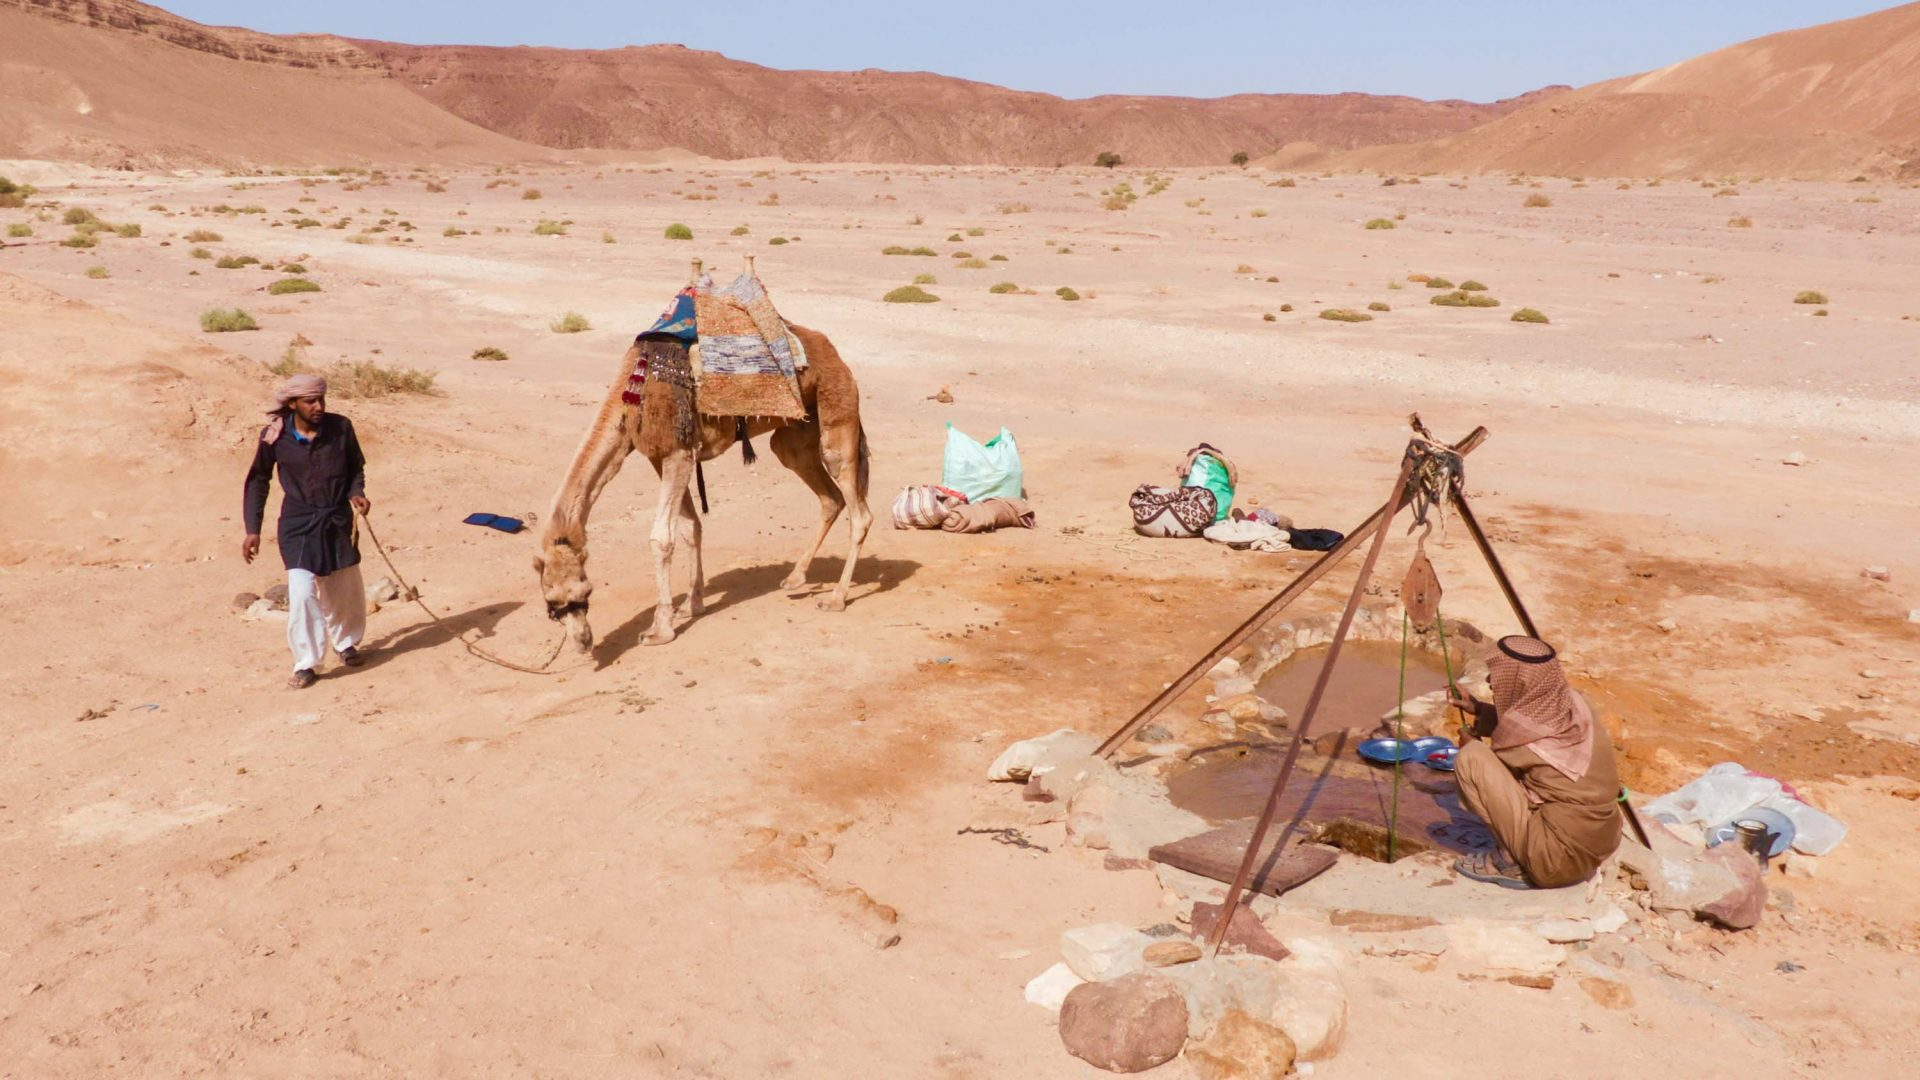 Harboush the camel re-hydrates at a well in the Sinai desert.